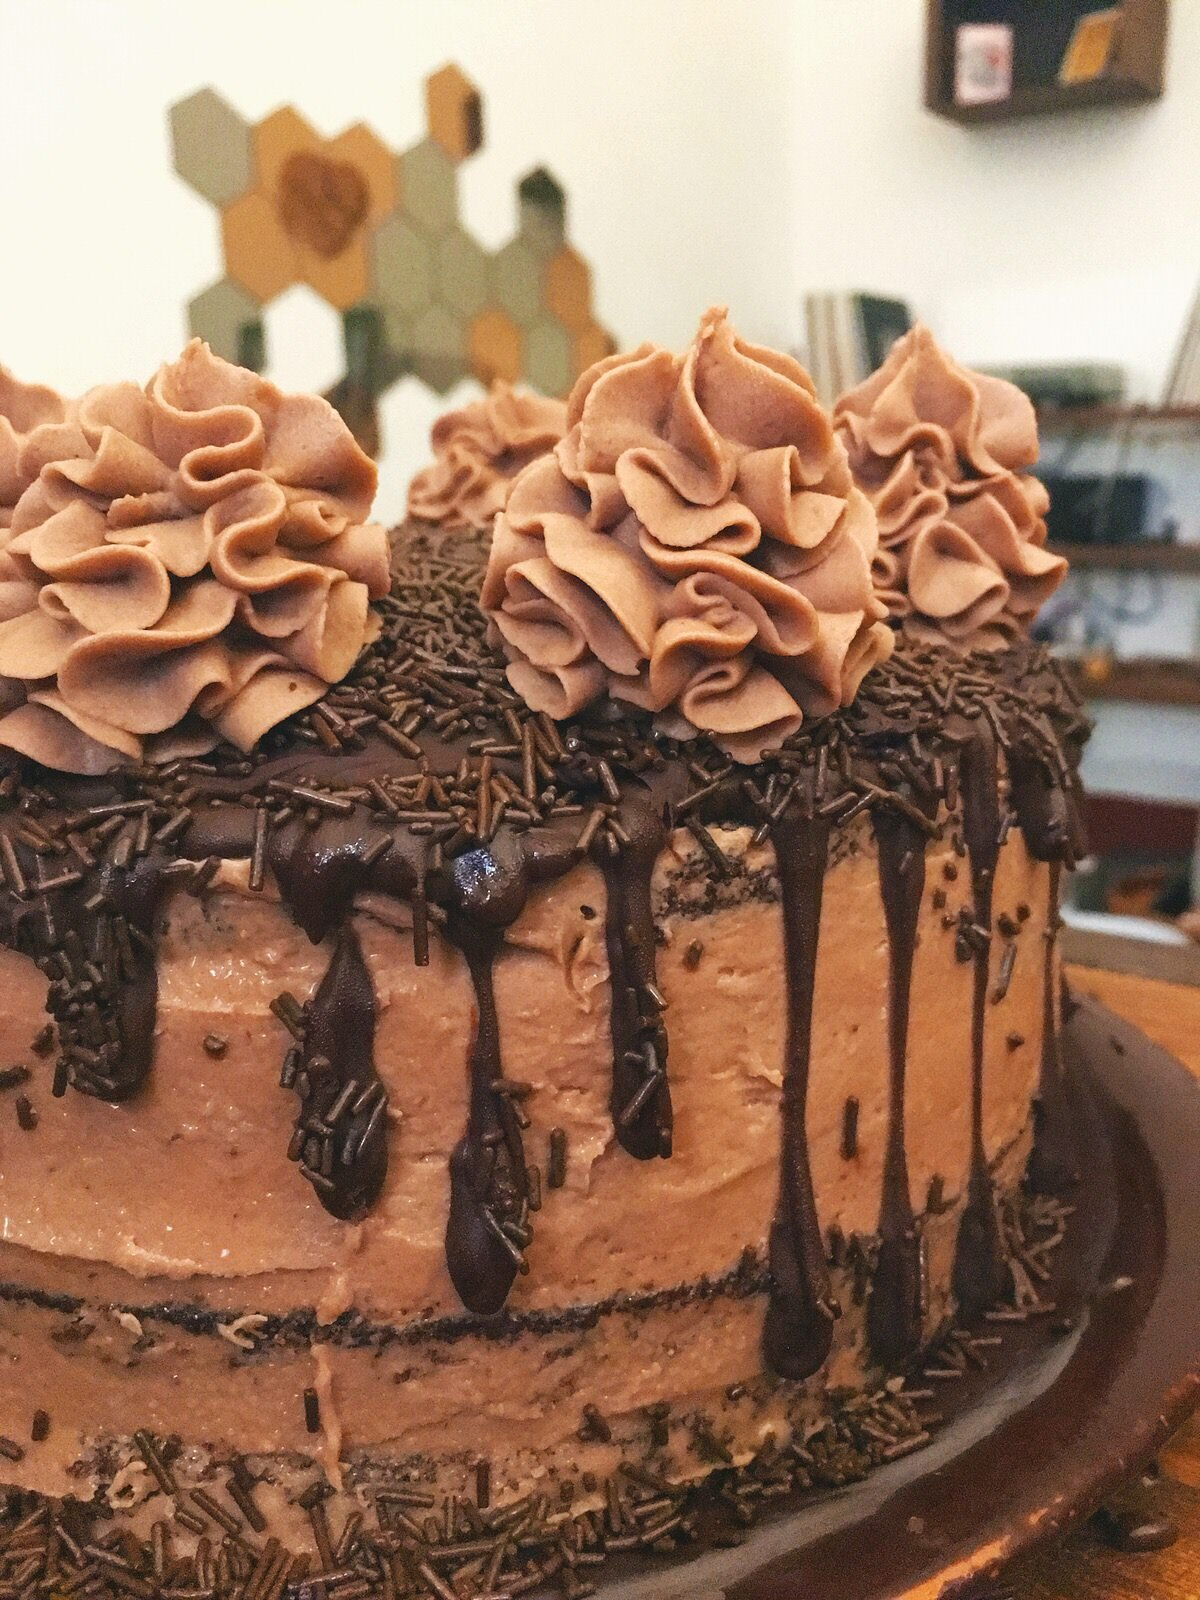 This Nutella and chocolate cake is packed with rich flavor! The Nutella buttercream is to die for!